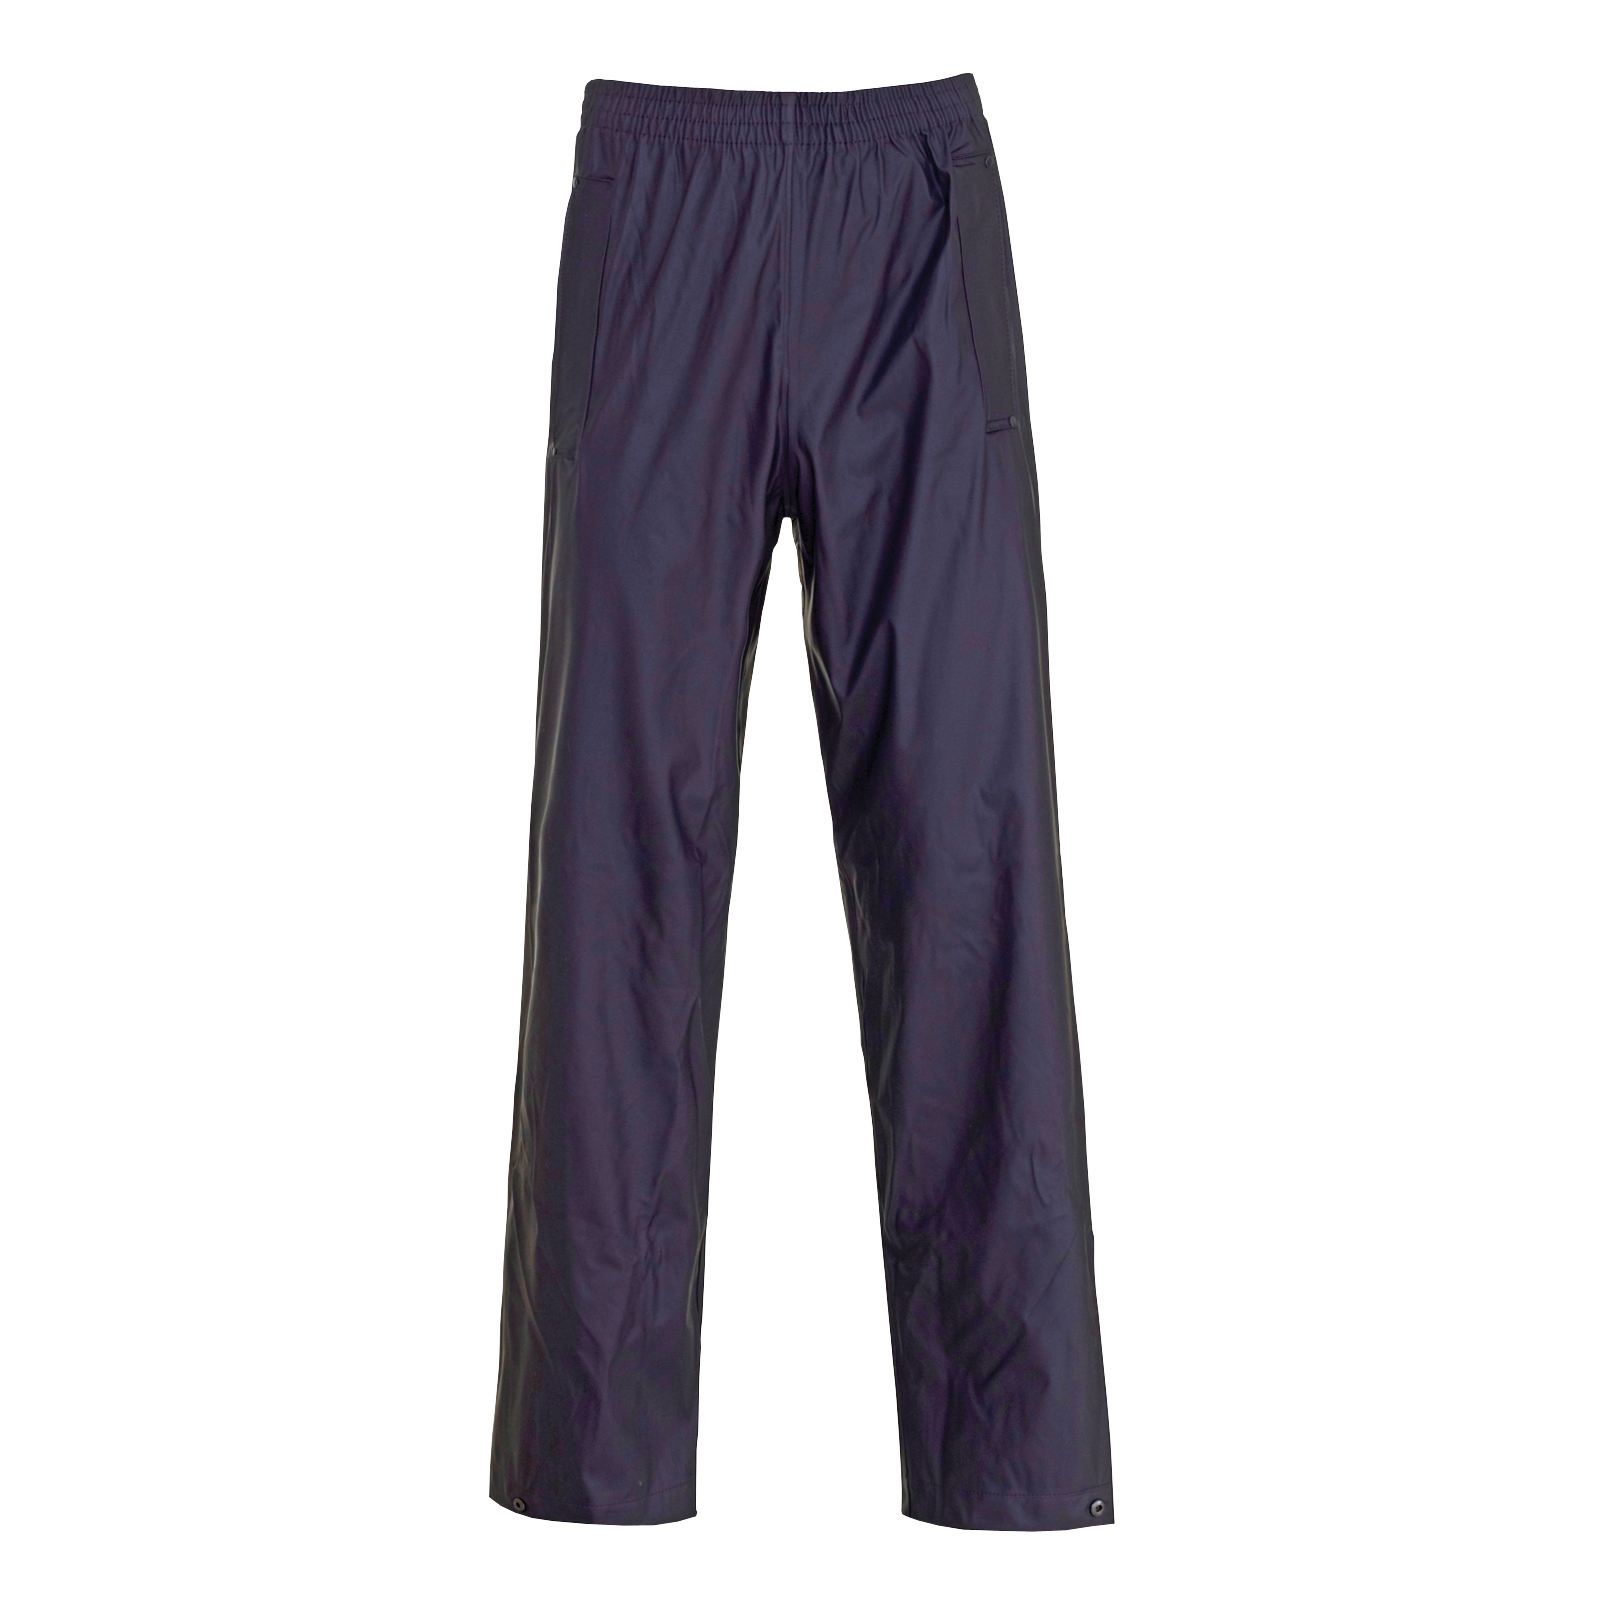 B-Dri Weatherproof Super Trousers Large Navy Blue Ref SBDTNL Approx 3 Day Leadtime